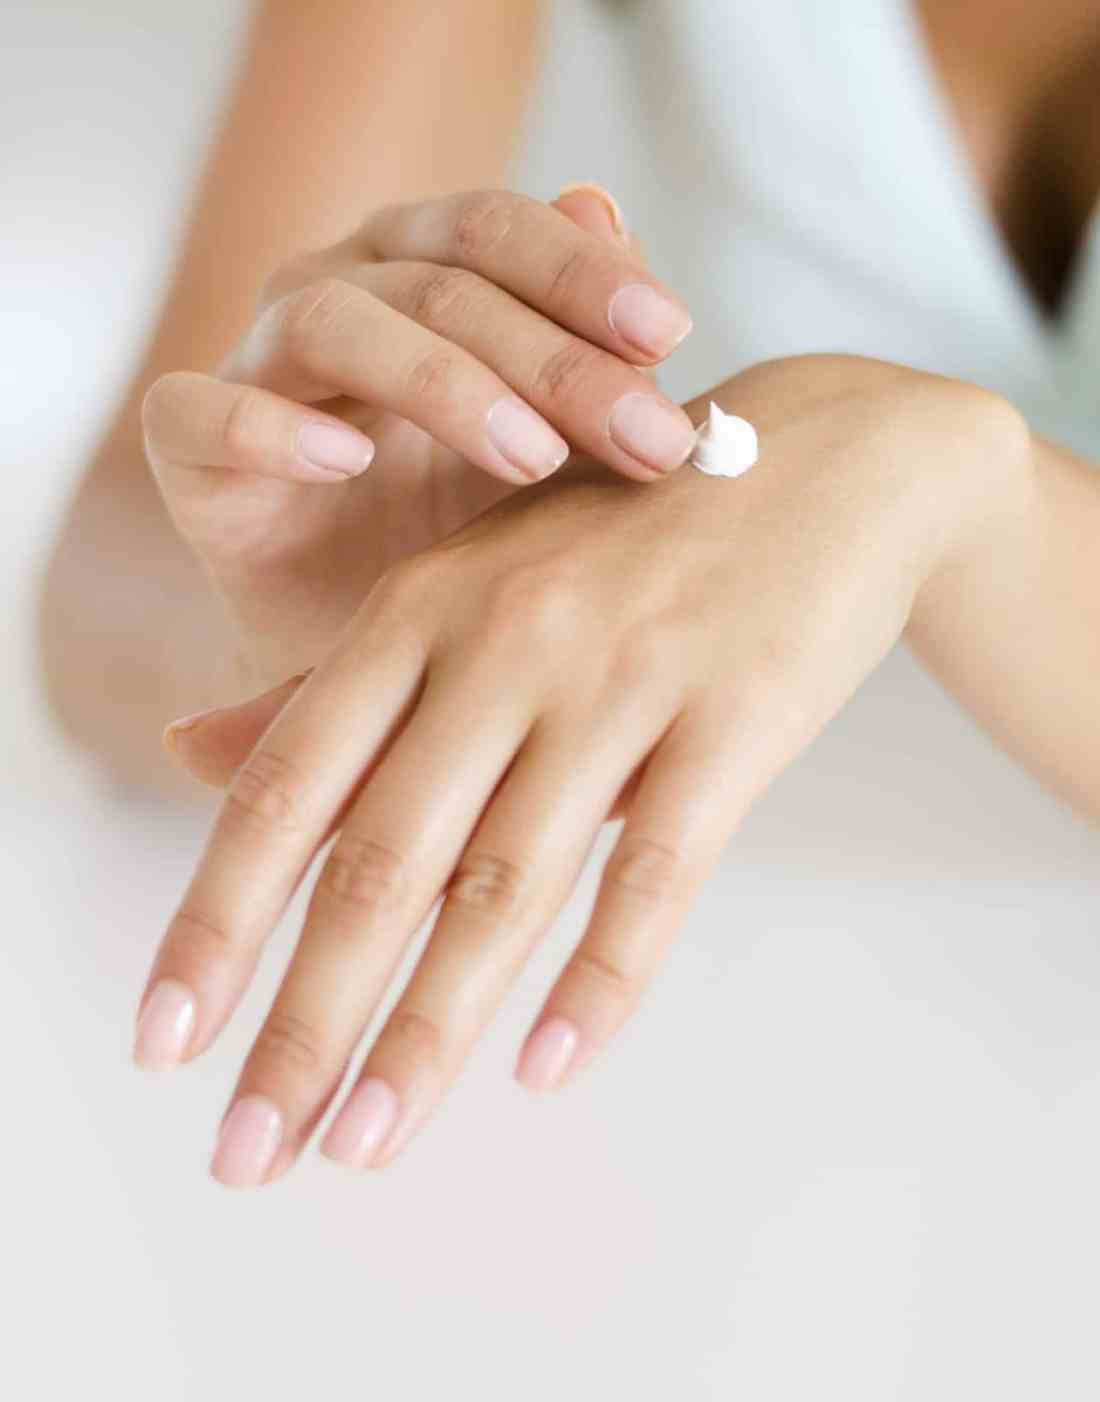 Skincare Tips for the Whole Body, including the hands.